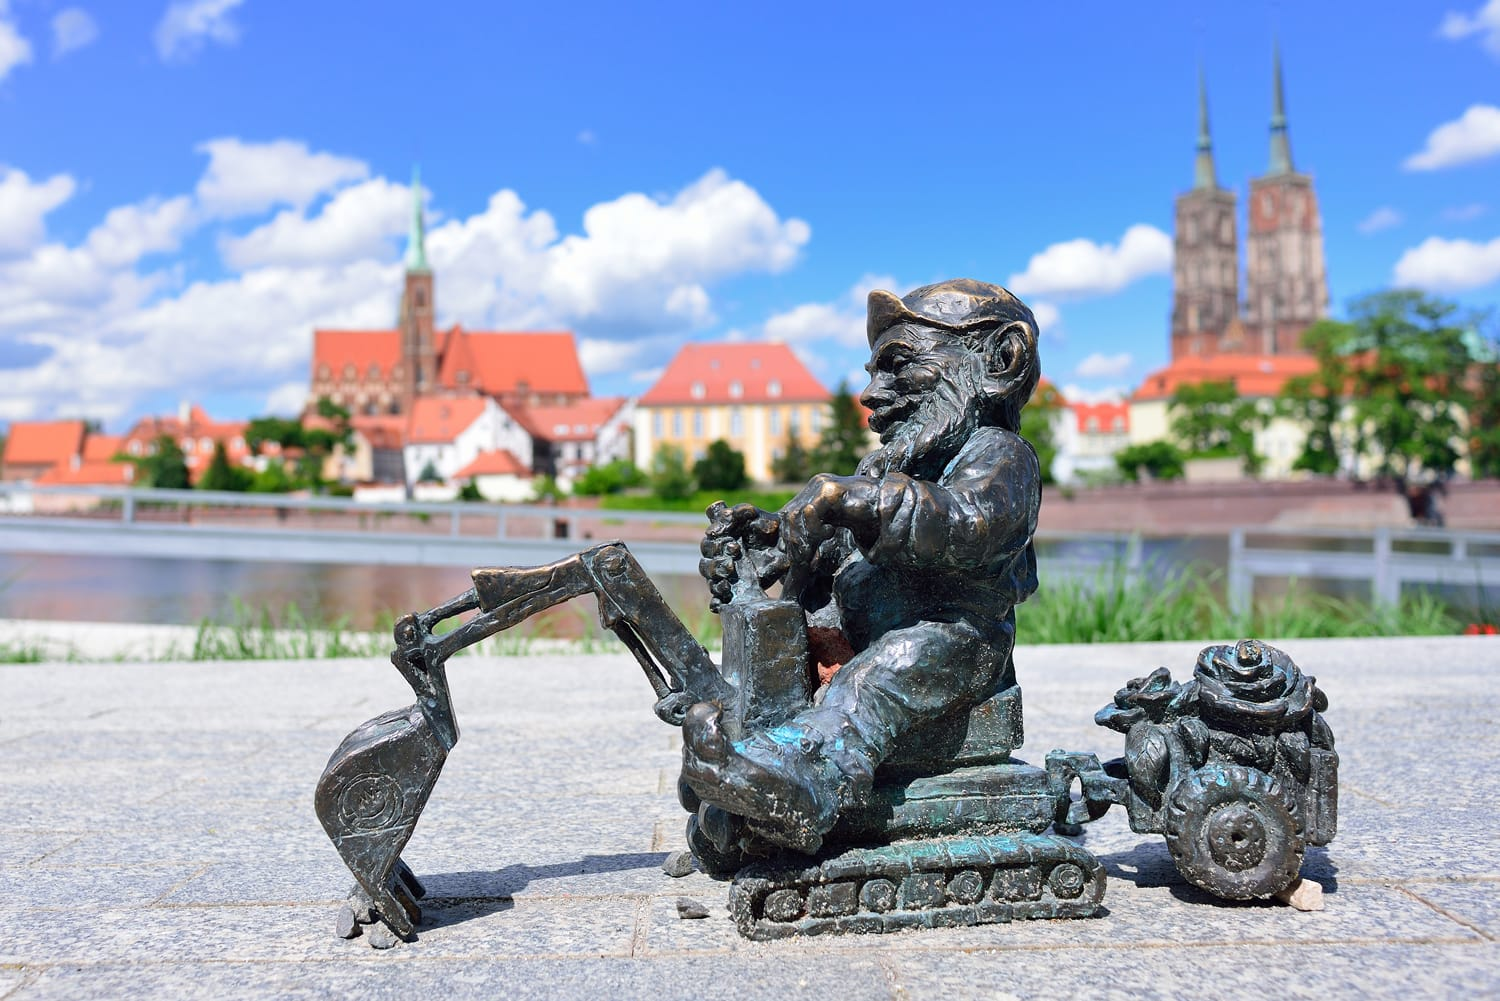 A small gnome sculpture in the background of the panorama of Wroclaw.